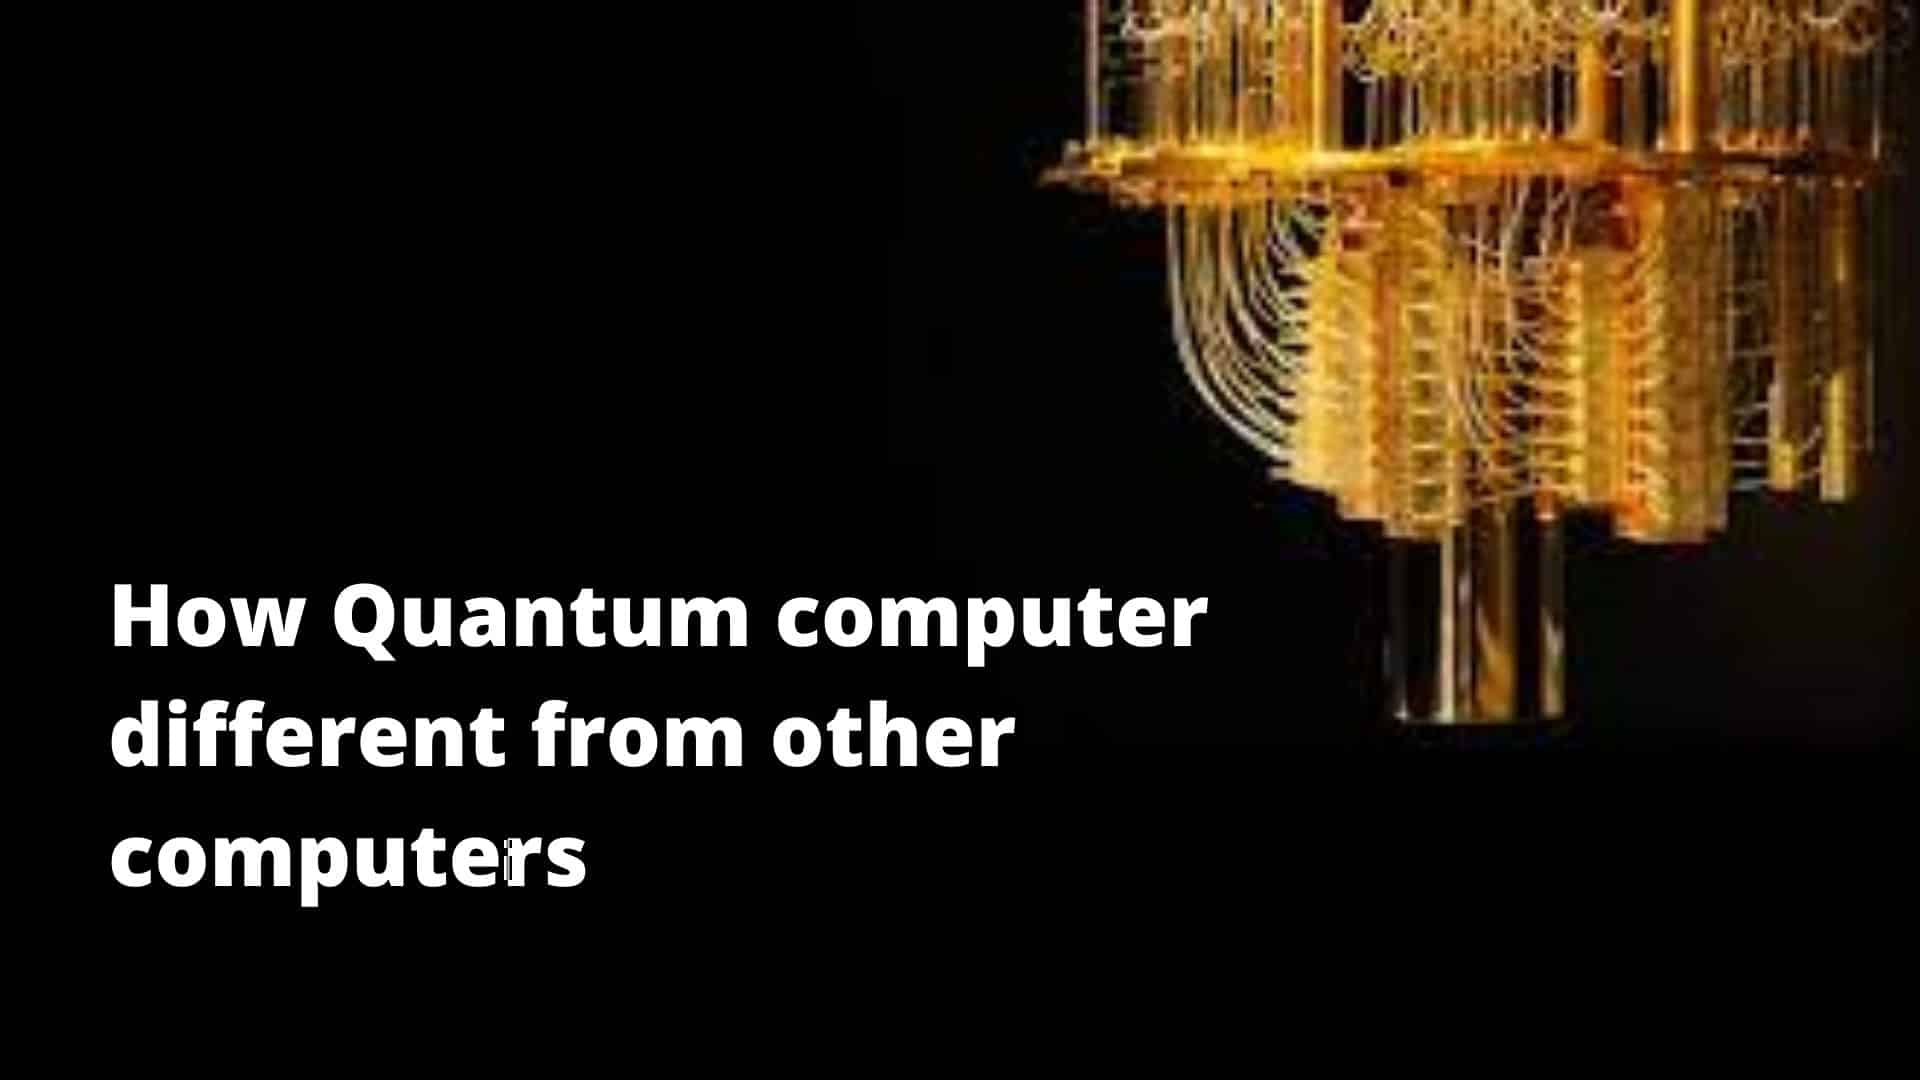 How Quantum computer different from other computers